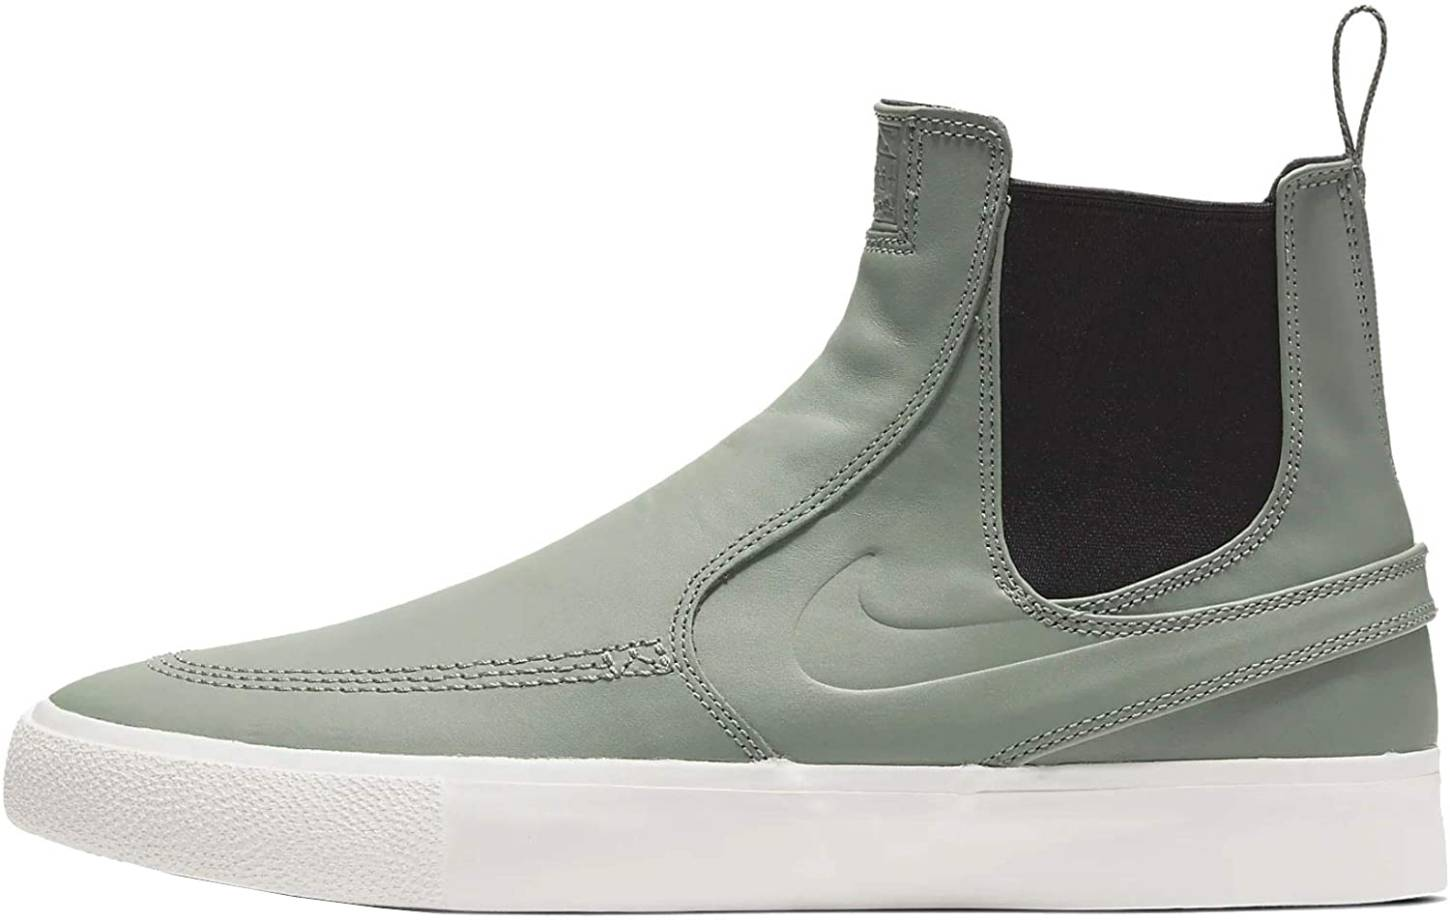 Autónomo Estimado Sencillez  7 Reasons to/NOT to Buy Nike SB Zoom Stefan Janoski Slip Mid RM (Jan 2021)  | RunRepeat